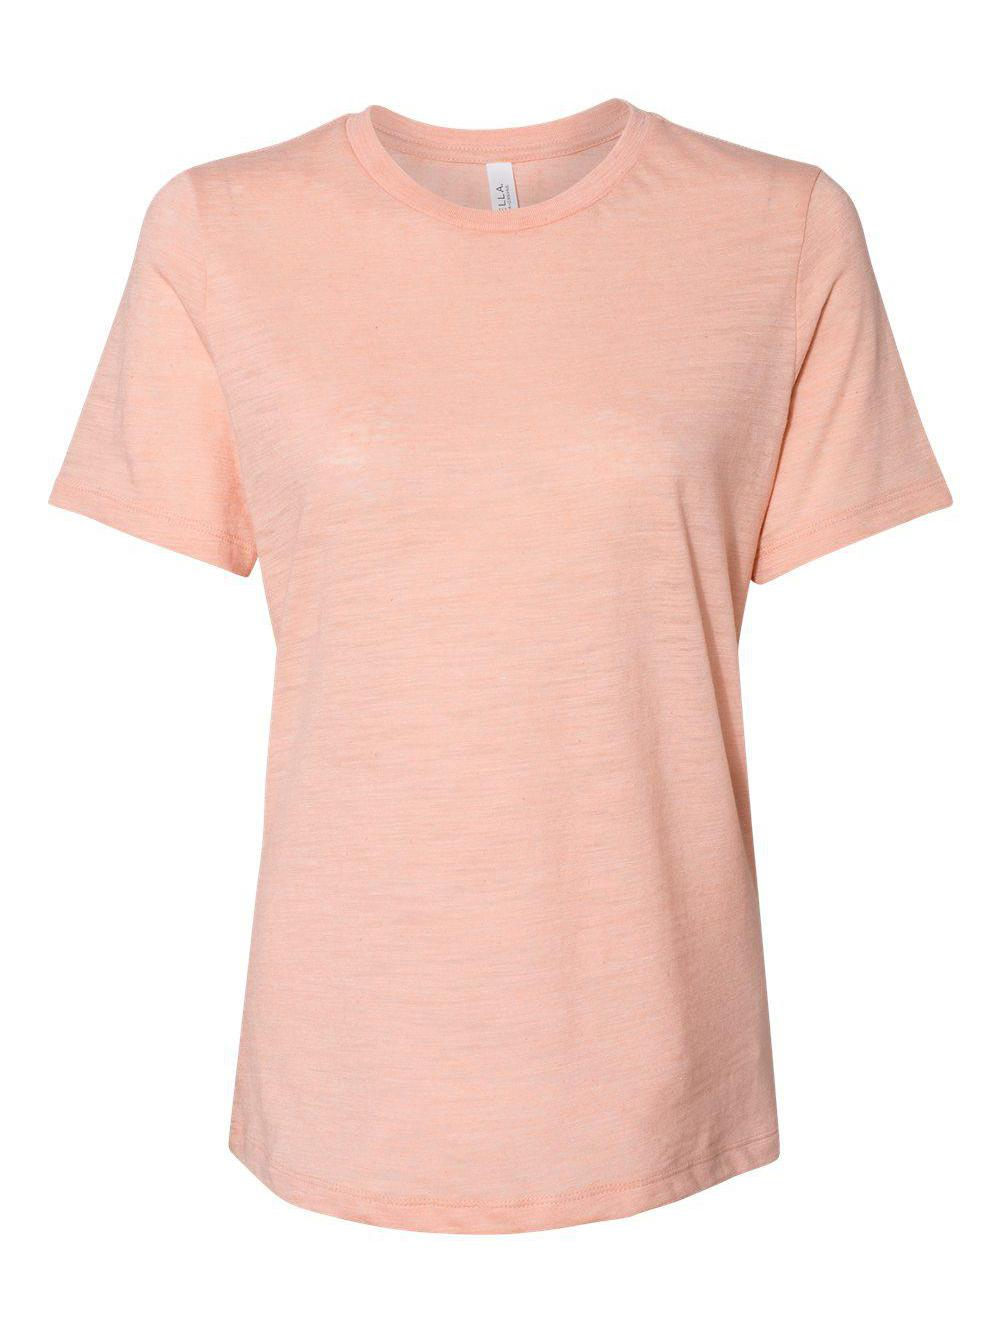 Bella-Canvas-Women-039-s-Relaxed-Short-Sleeve-Jersey-Tee-6400 thumbnail 66